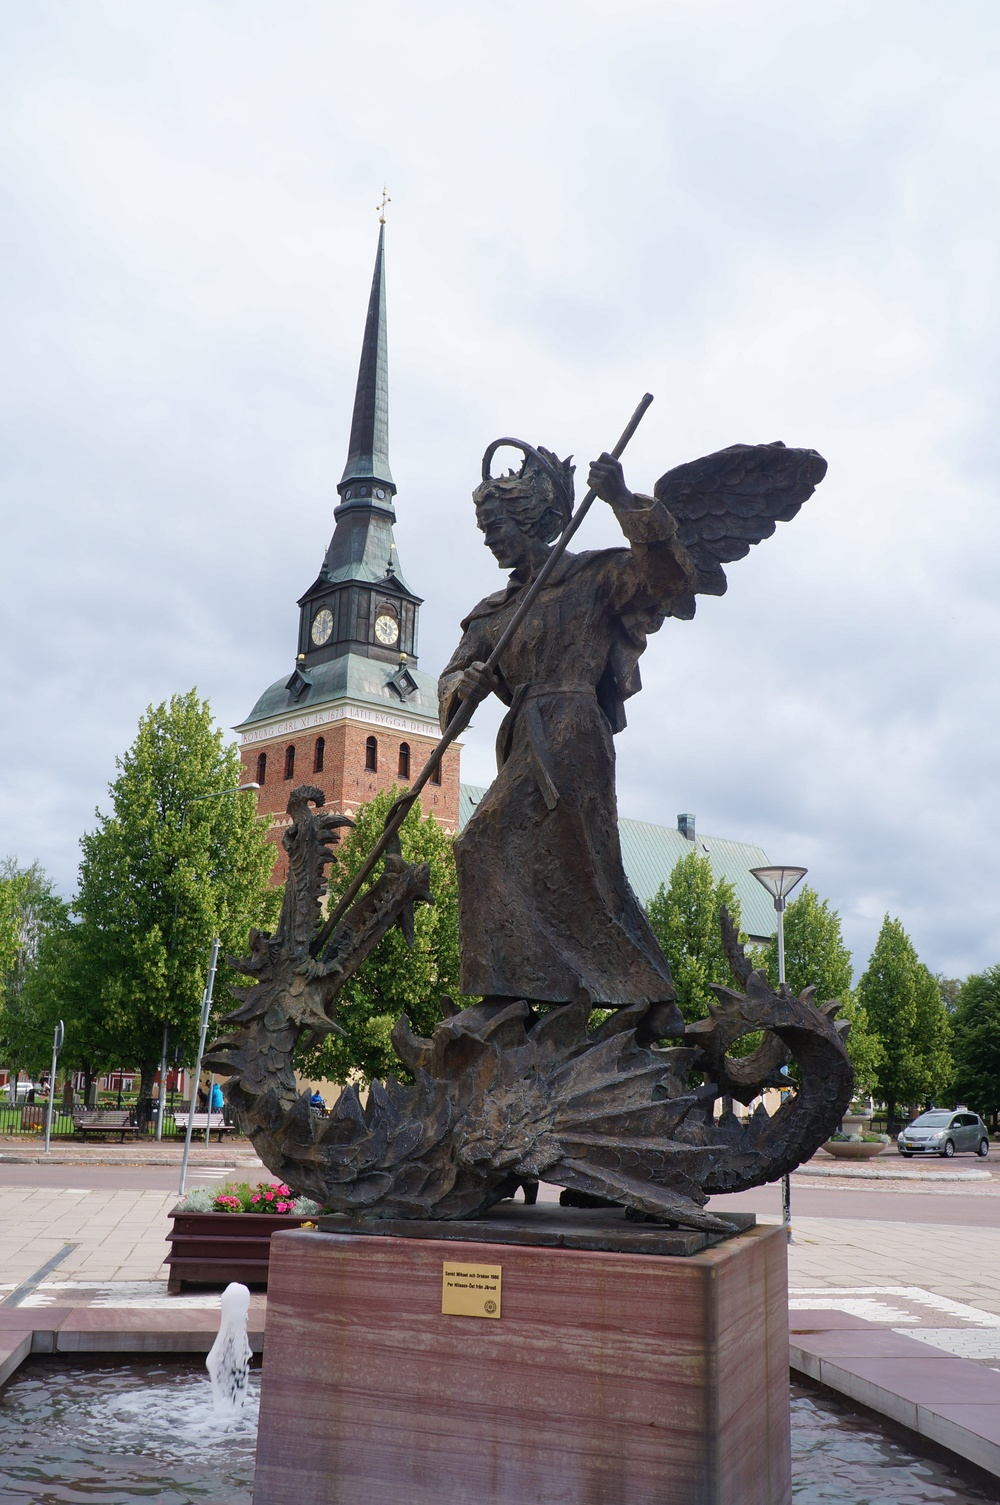 Mythic creatures in Mora, Sweden.